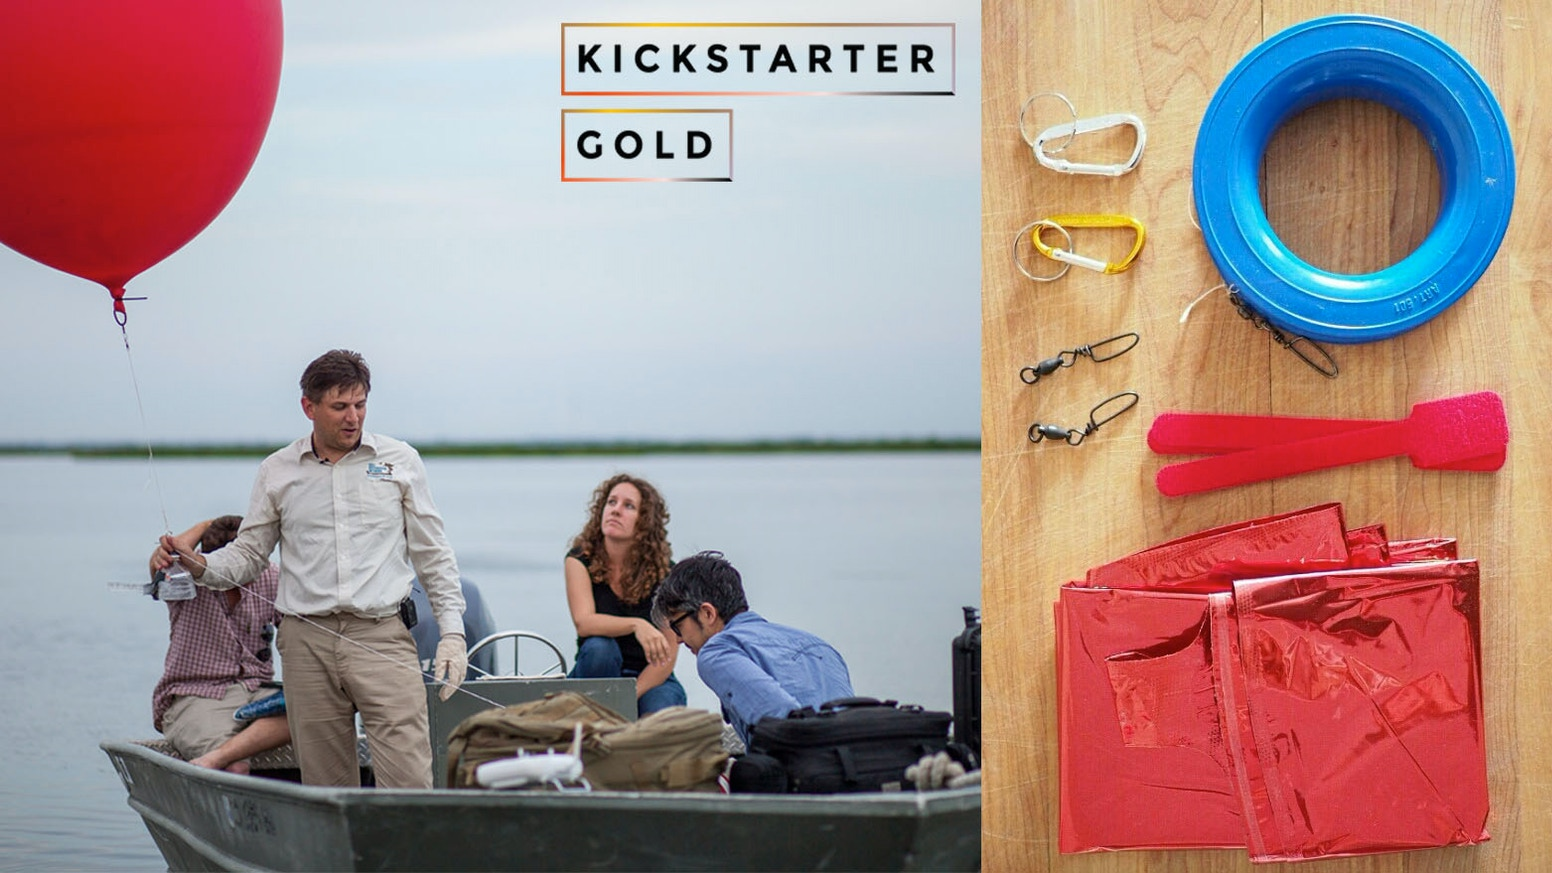 Kickstarter gold balloon mapping kits by public lab kickstarter a simple diy kit to take aerial photographs of things that are important to you gumiabroncs Choice Image